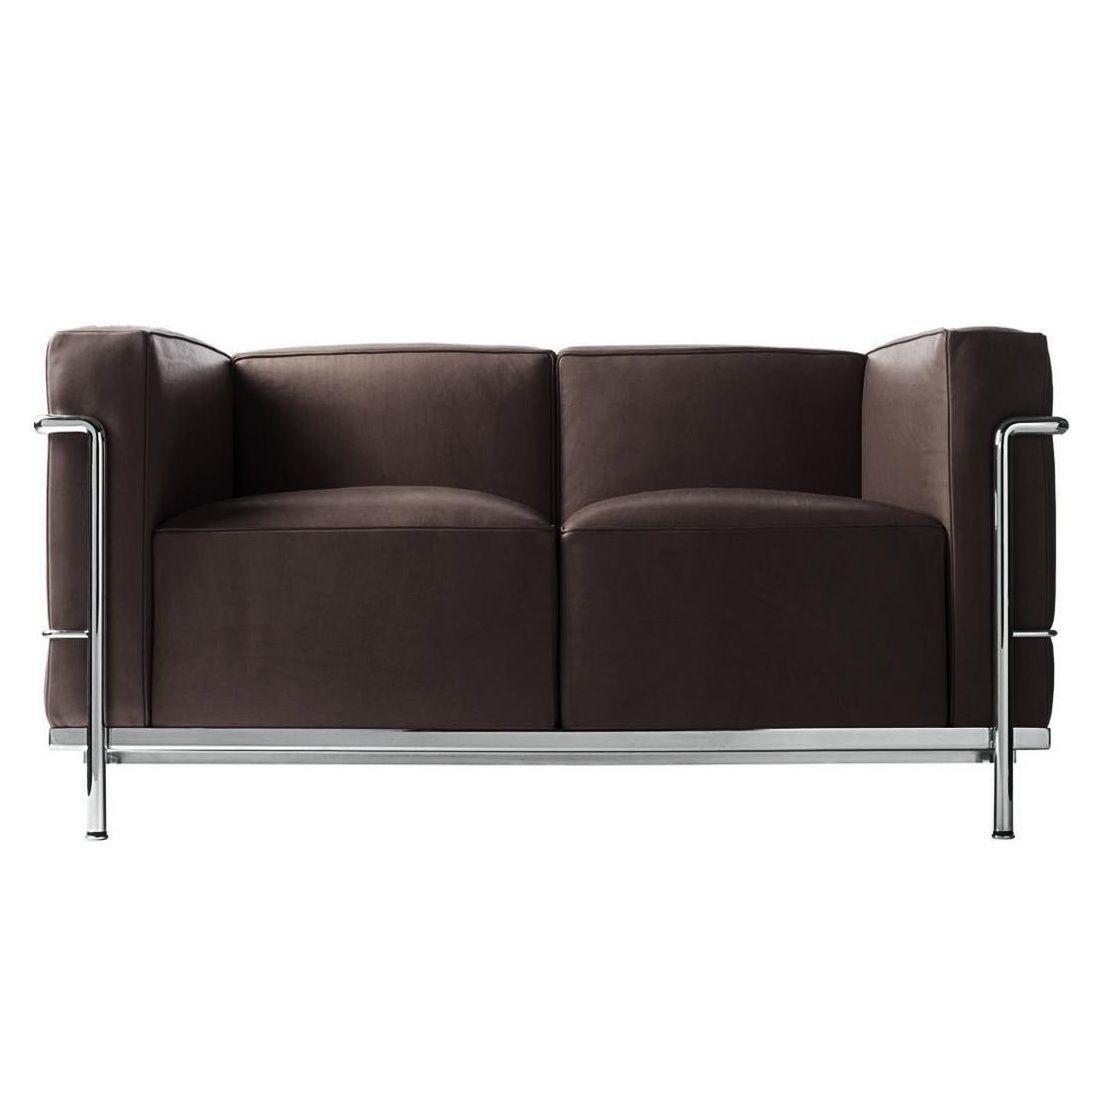 Le corbusier lc2 sofa cassina cassina sofas seating furniture furniture Le corbusier lc2 sofa